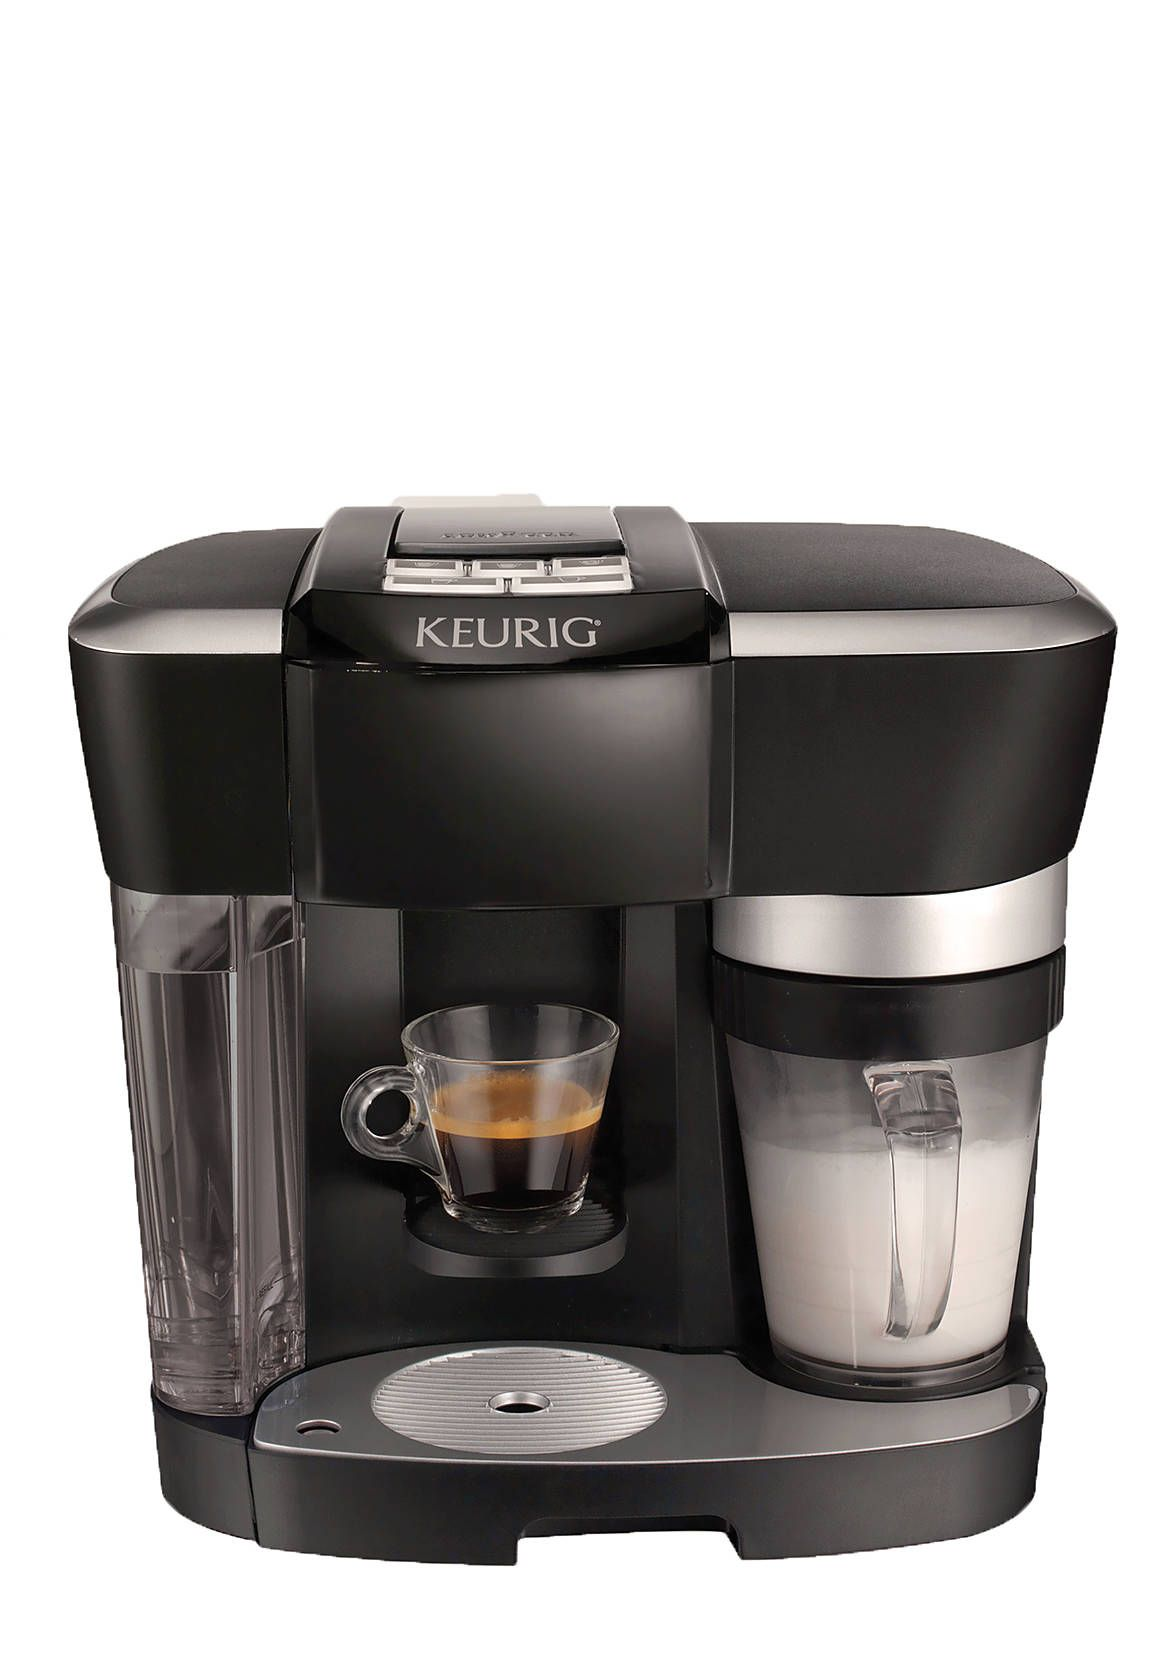 KEURIG FOR LAVAZZA Rivo R500 Espresso Brewer Beauty